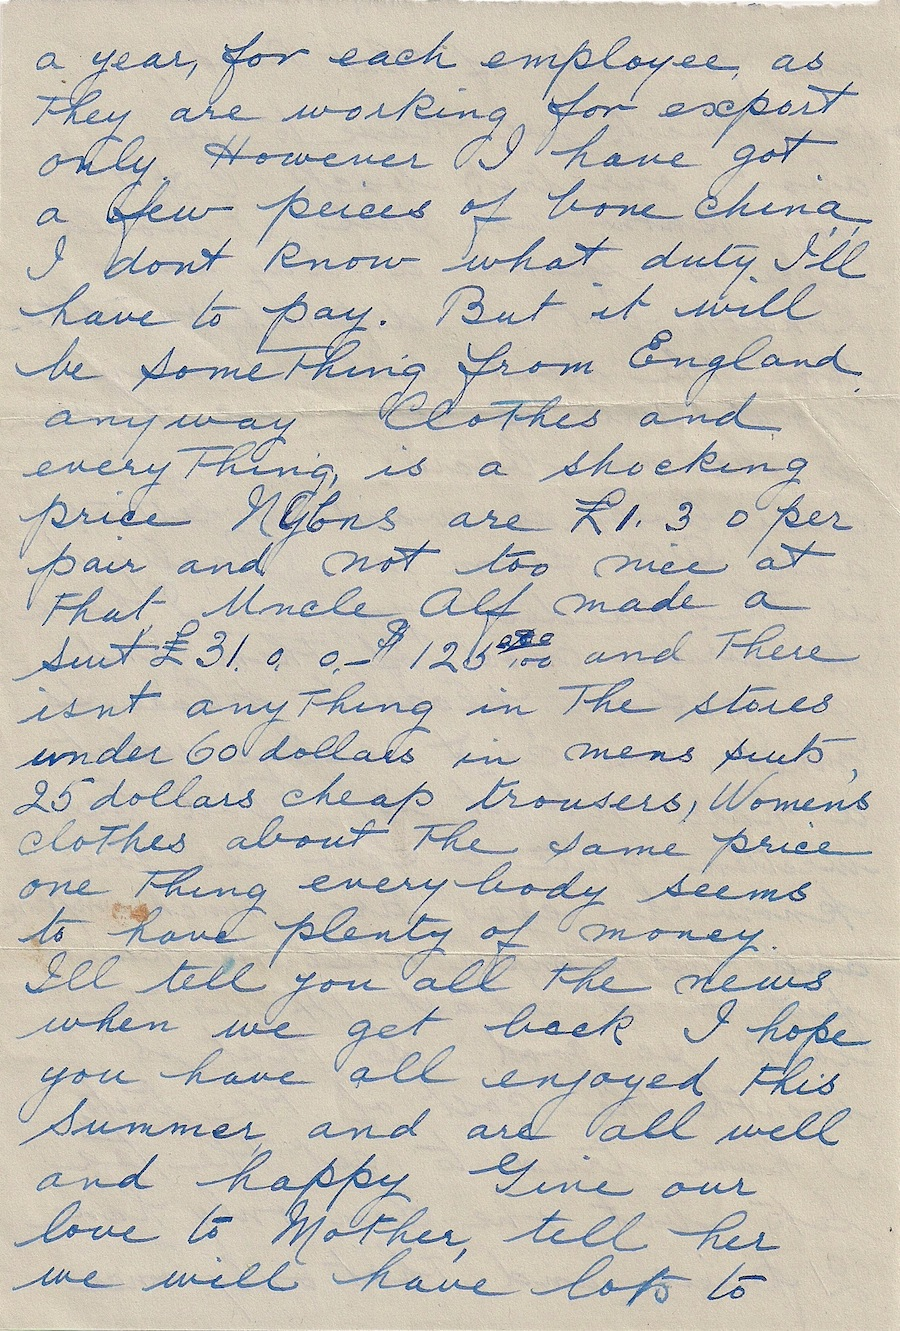 minnie-wilkinson-letter-from-england-1948-6